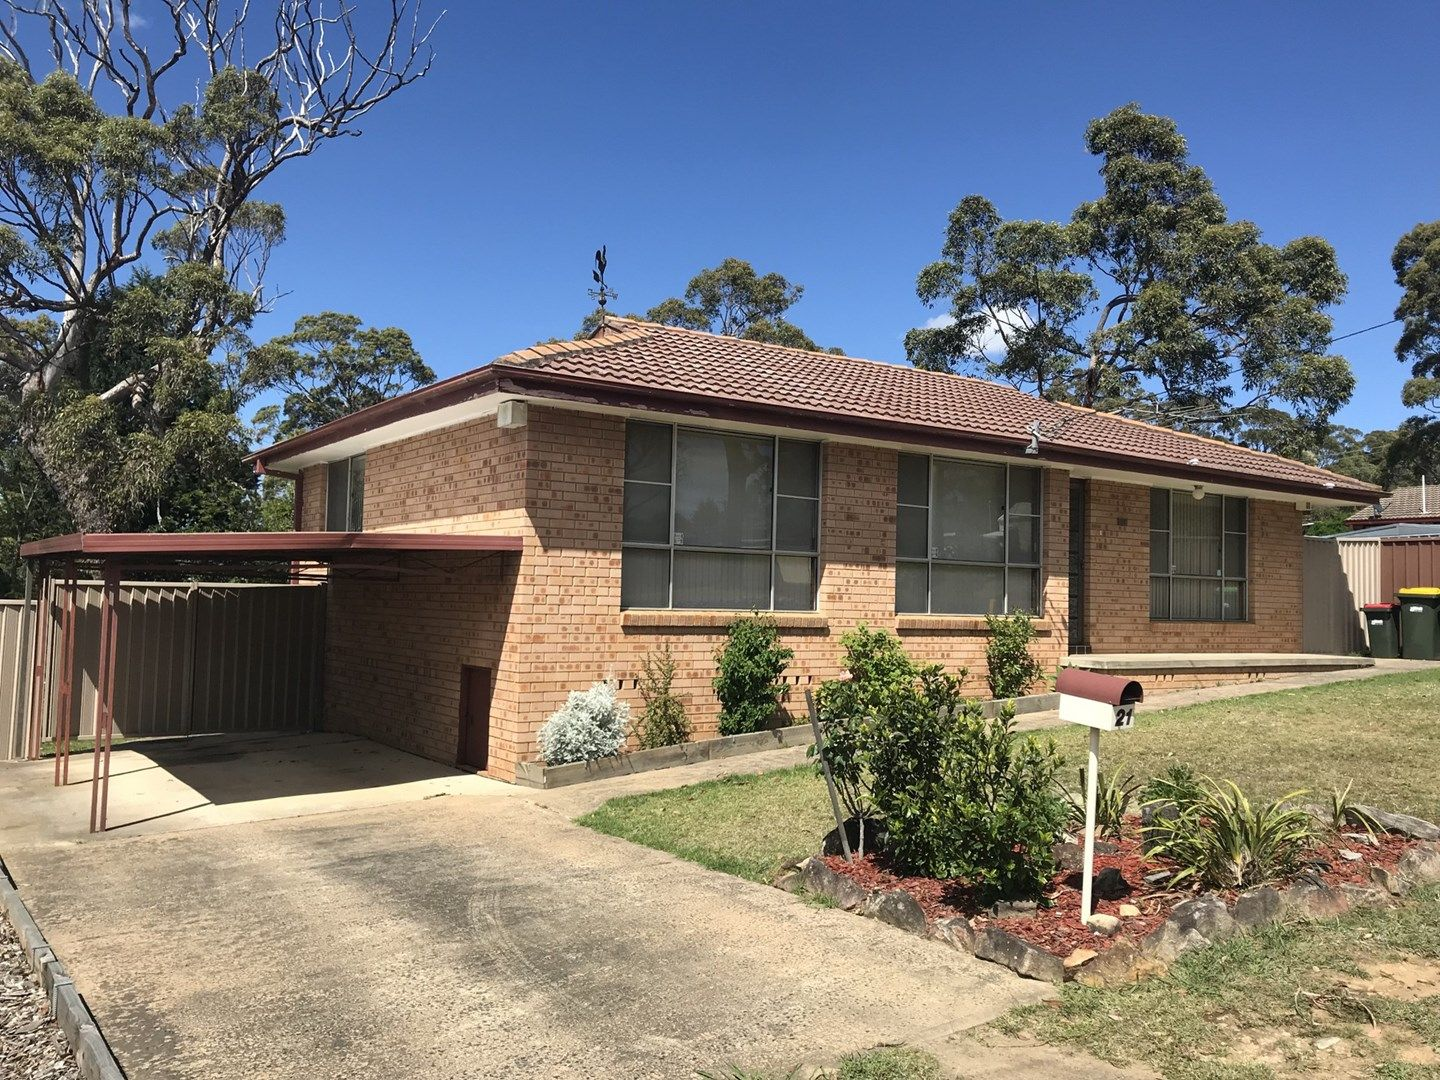 21 King Street, Hill Top NSW 2575, Image 0